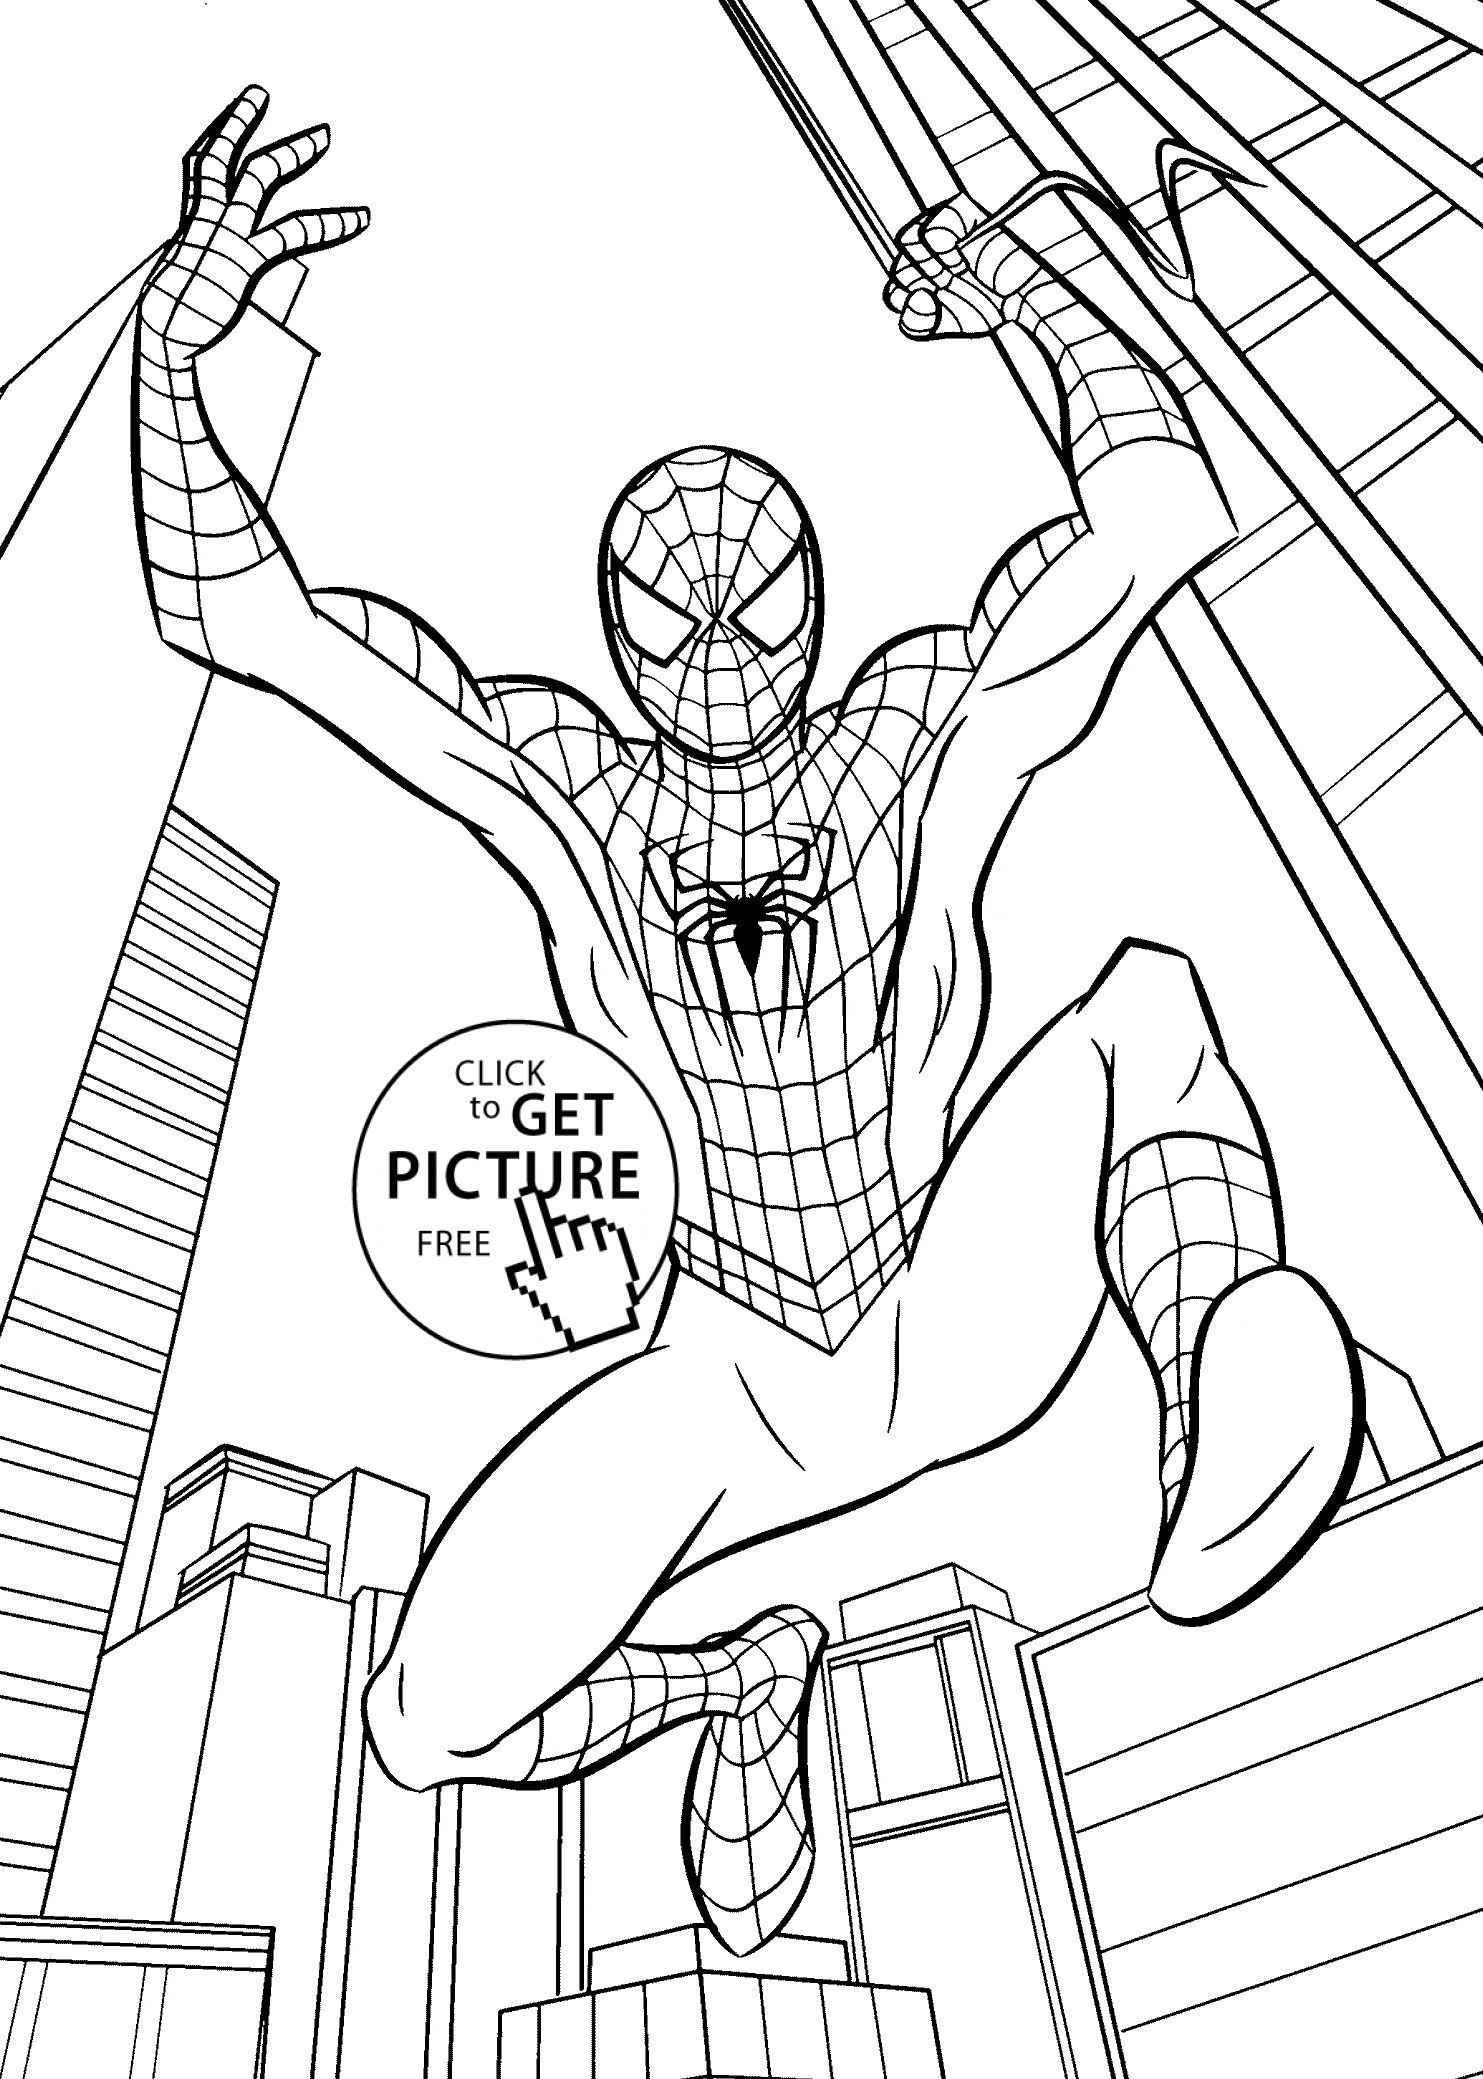 Learn To Draw A 3d Glass Spiderman Coloring Superhero Coloring